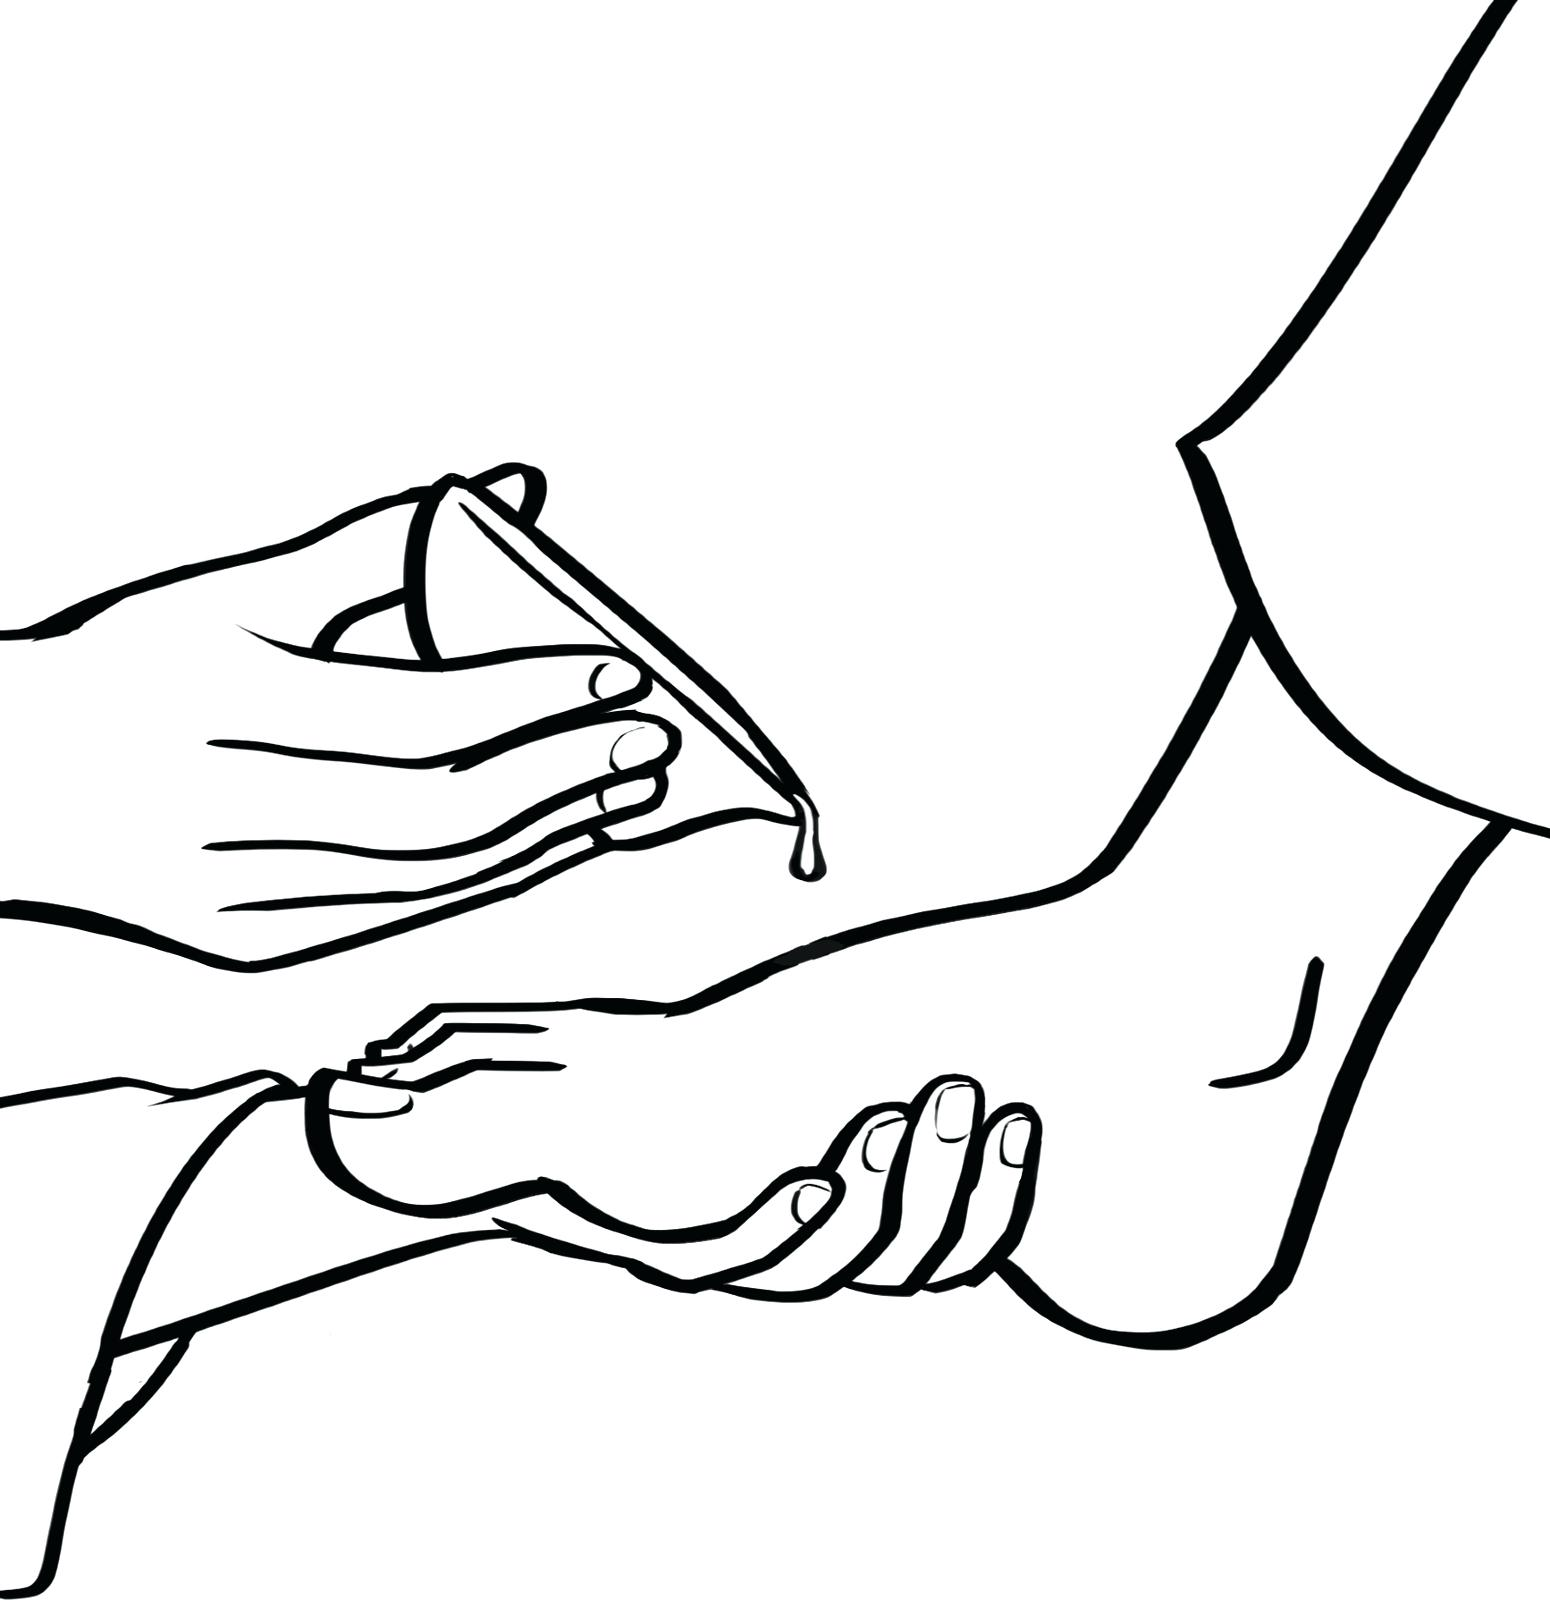 1550x1600 Little Foot Coloring Pages Free Dinosaur Animal Feet Happy